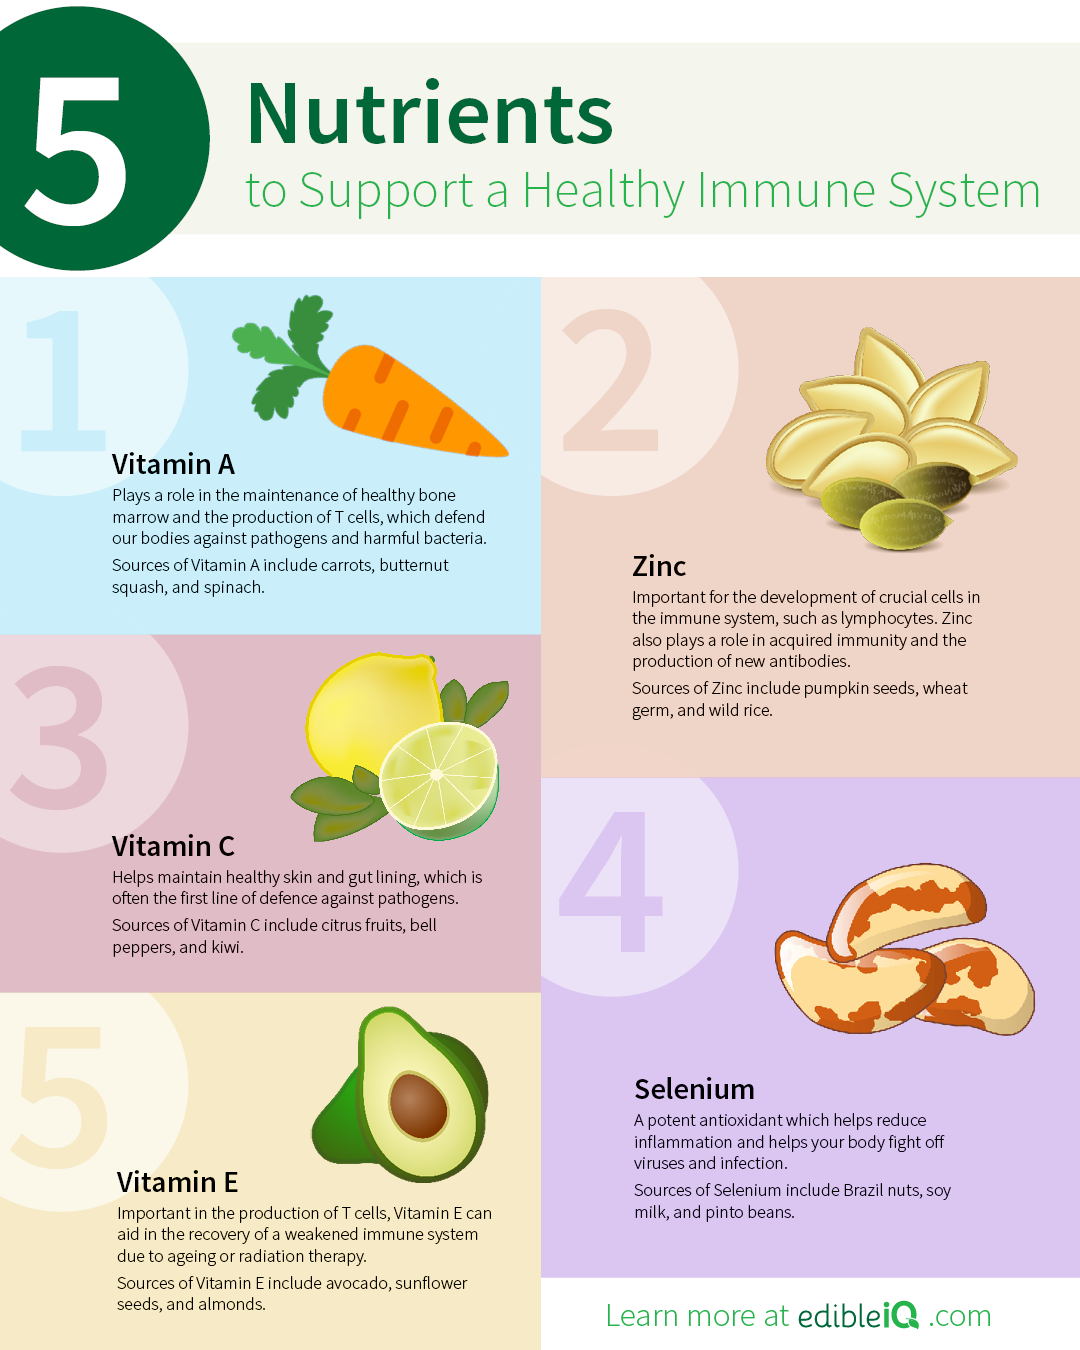 5 Nutrients to Support a Healthy Immune System